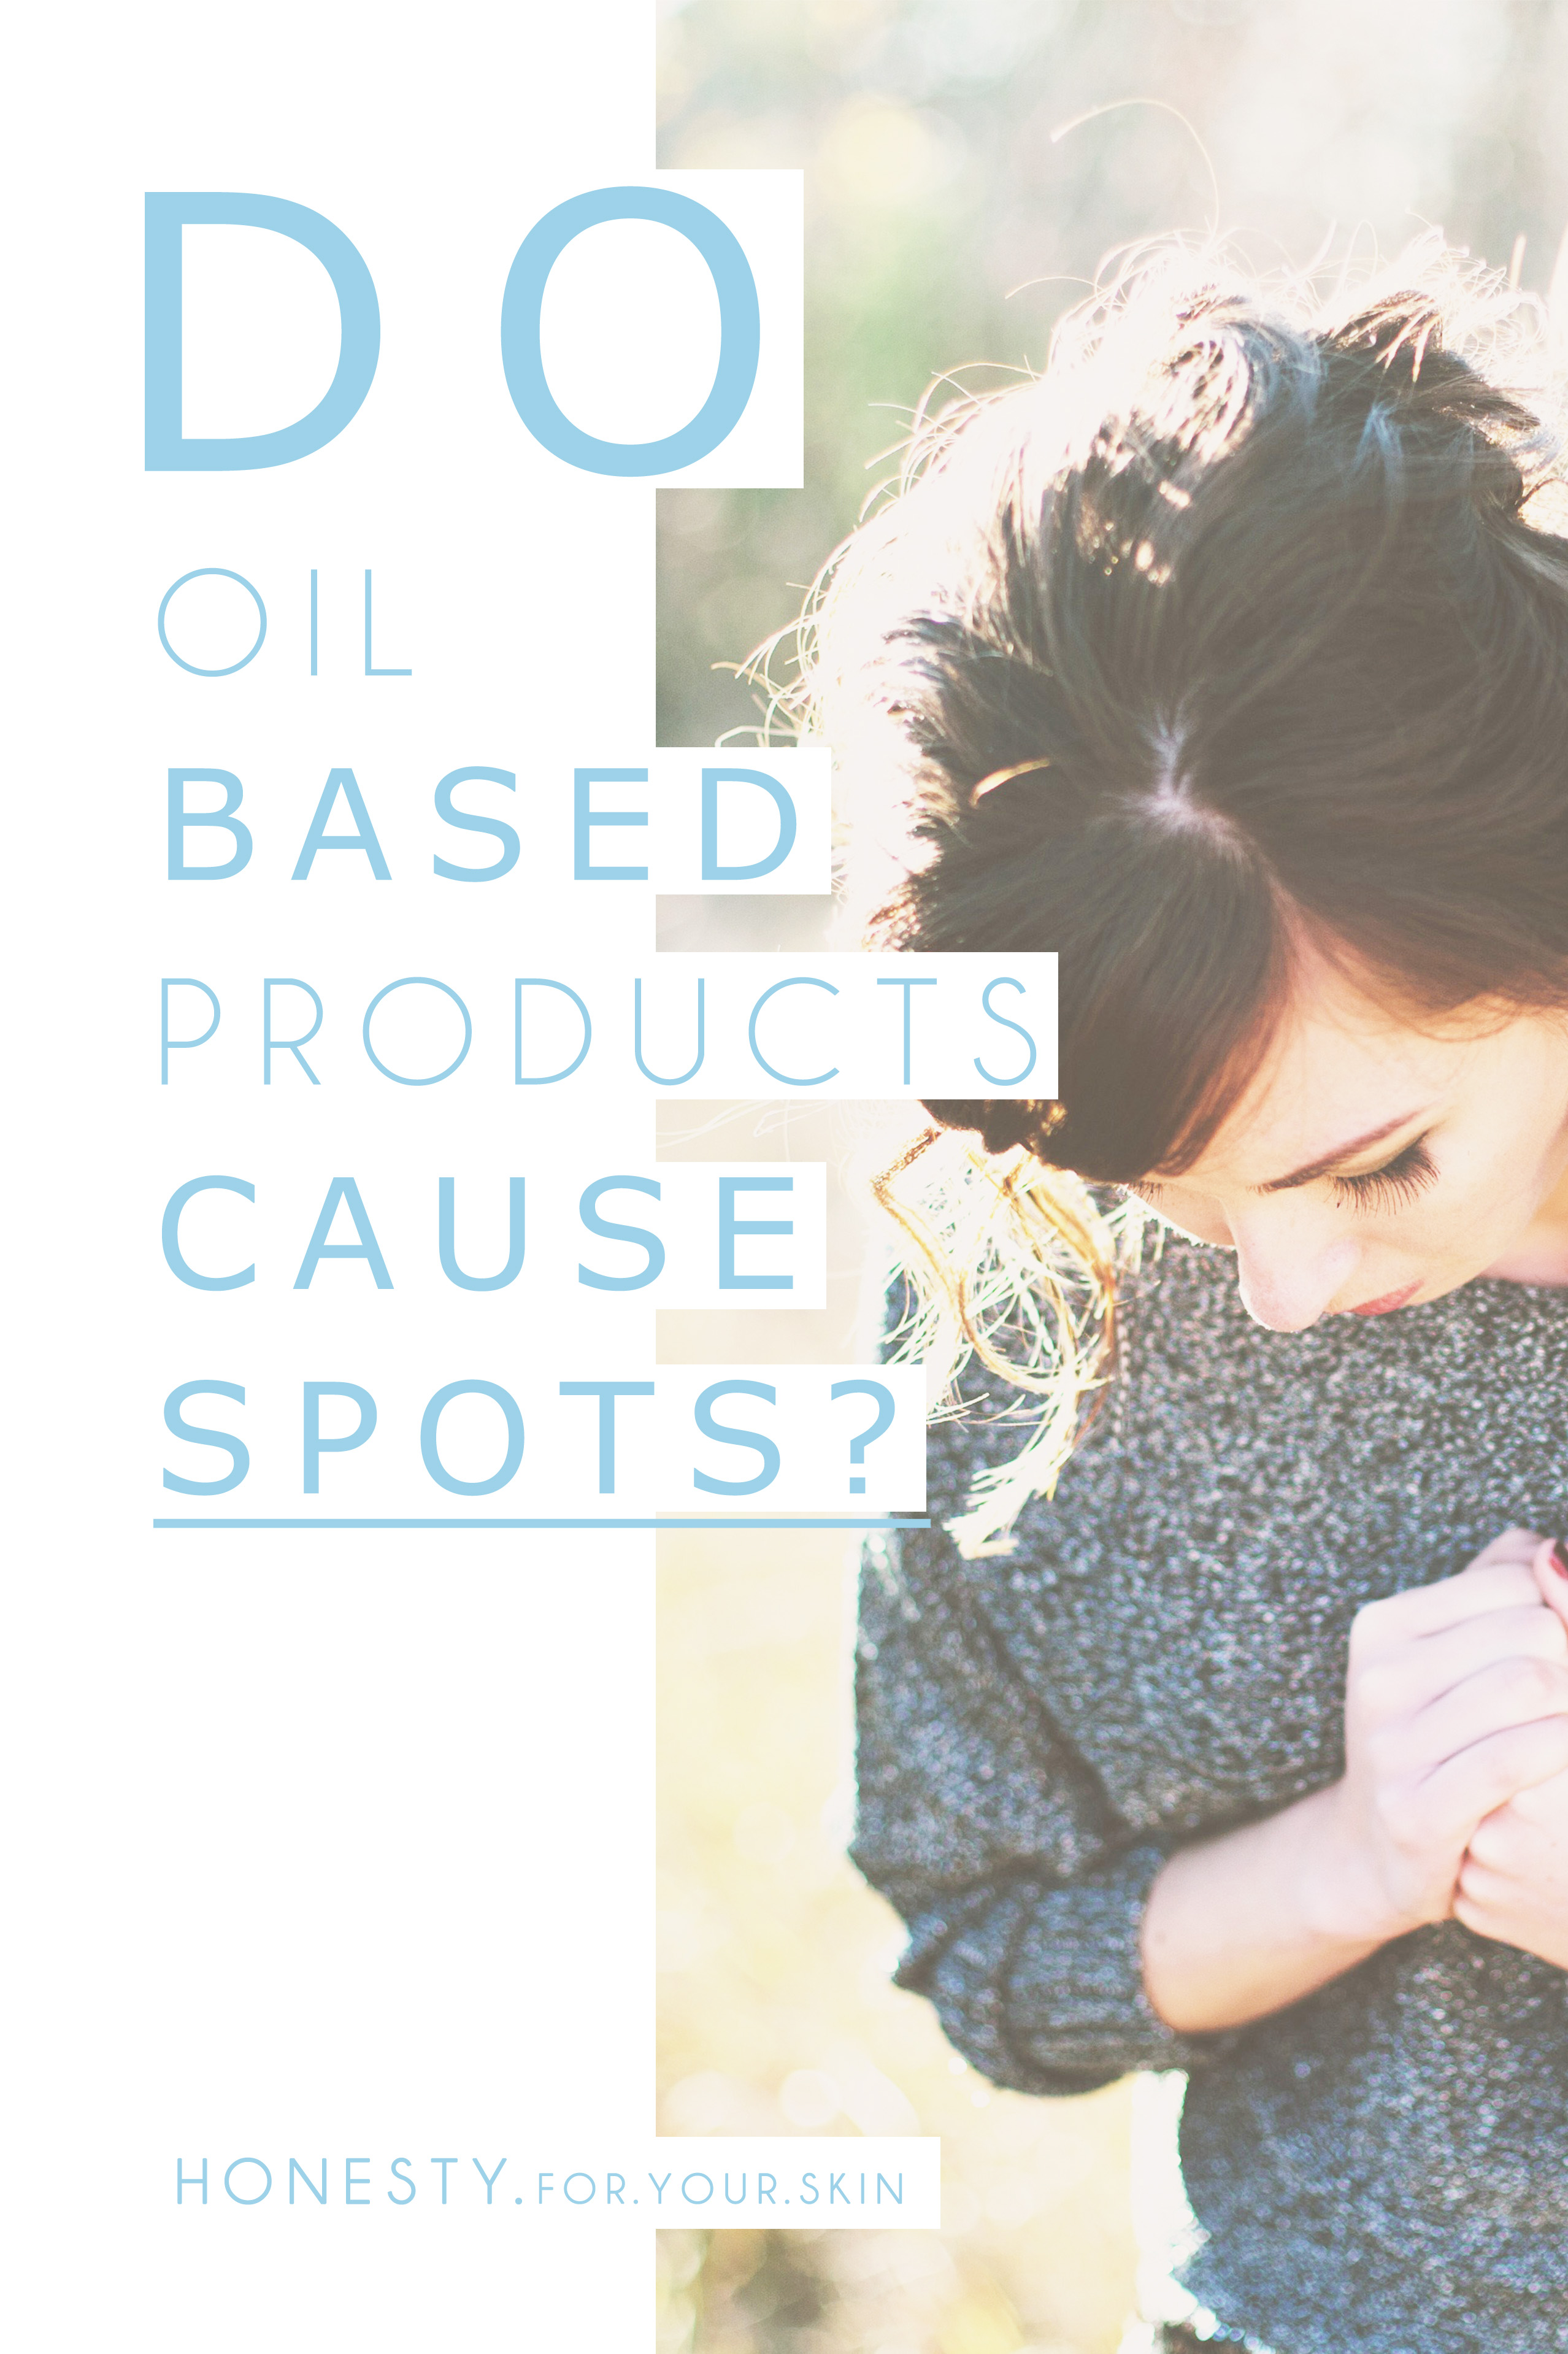 Do oil based products cause spots? Let's put this skincare rumour to the test and see what TRUTH there is to oils causing spots.